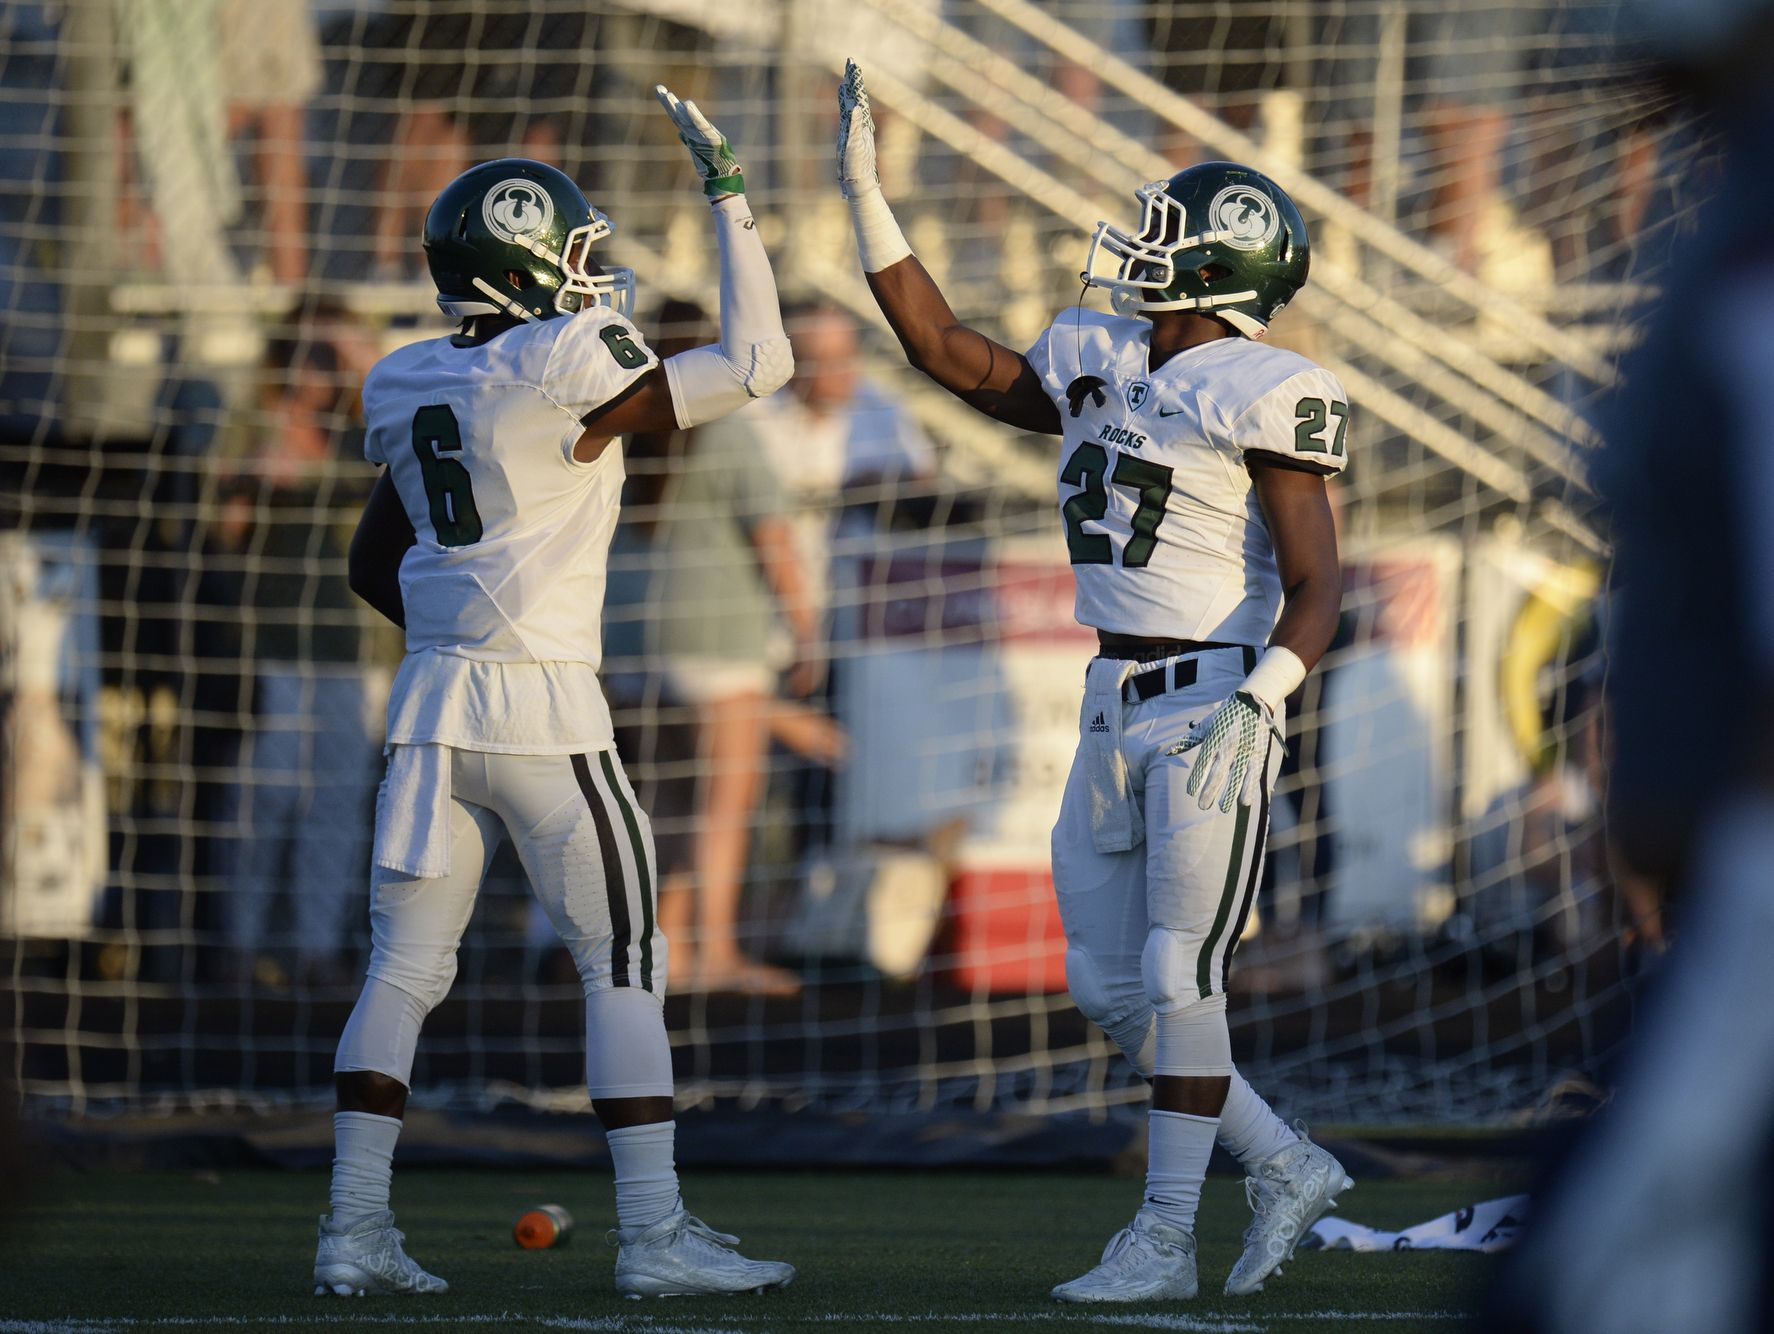 WR Jovel Smith celebrates with Jovan Smith during theTrinity football game against Lafayette in Lexington, KY on Friday, September 3, 2016.